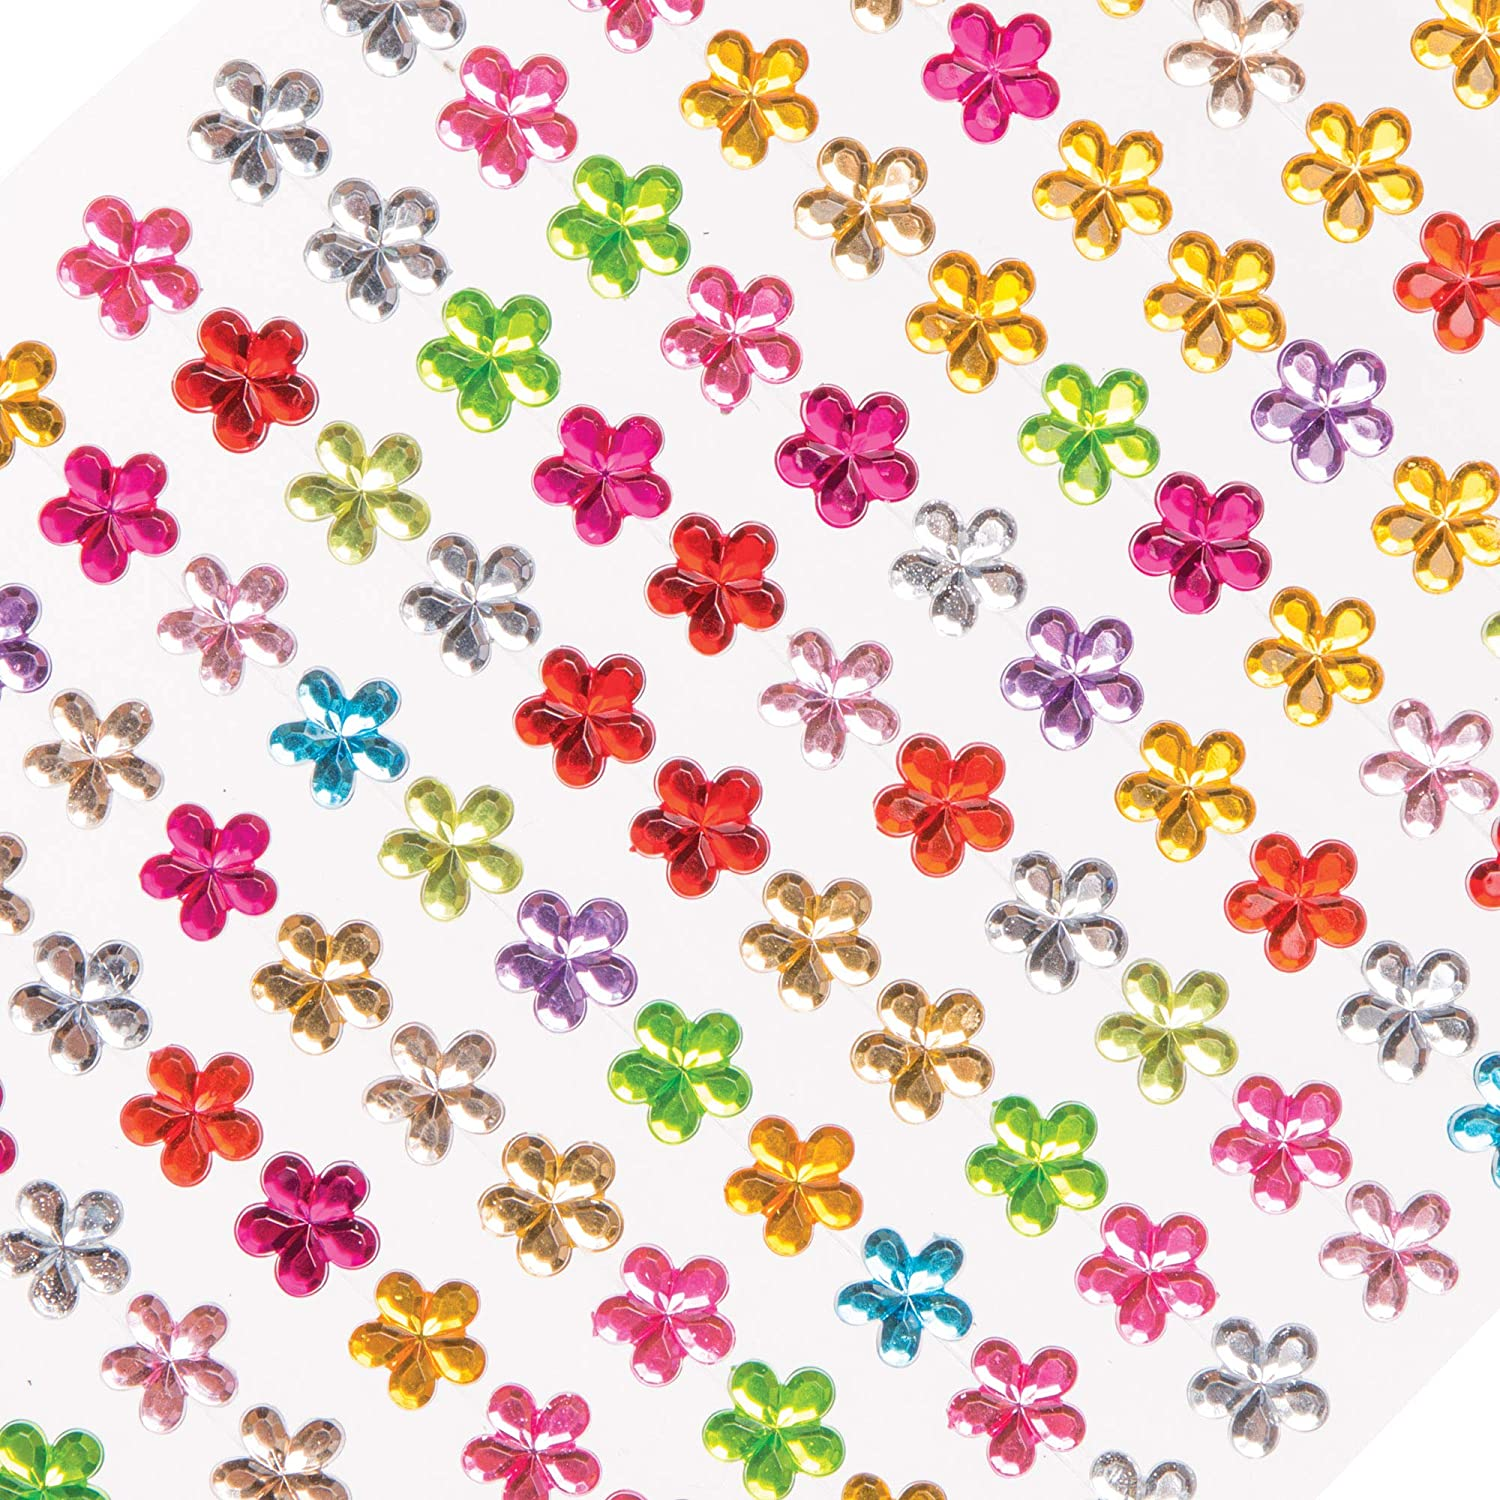 Embellishments for Kids Arts and Crafts Decoration for Mothers Day or Carnival // Mardi Gras Baker Ross Mini Flower Self-Adhesive Gems Pack of 308